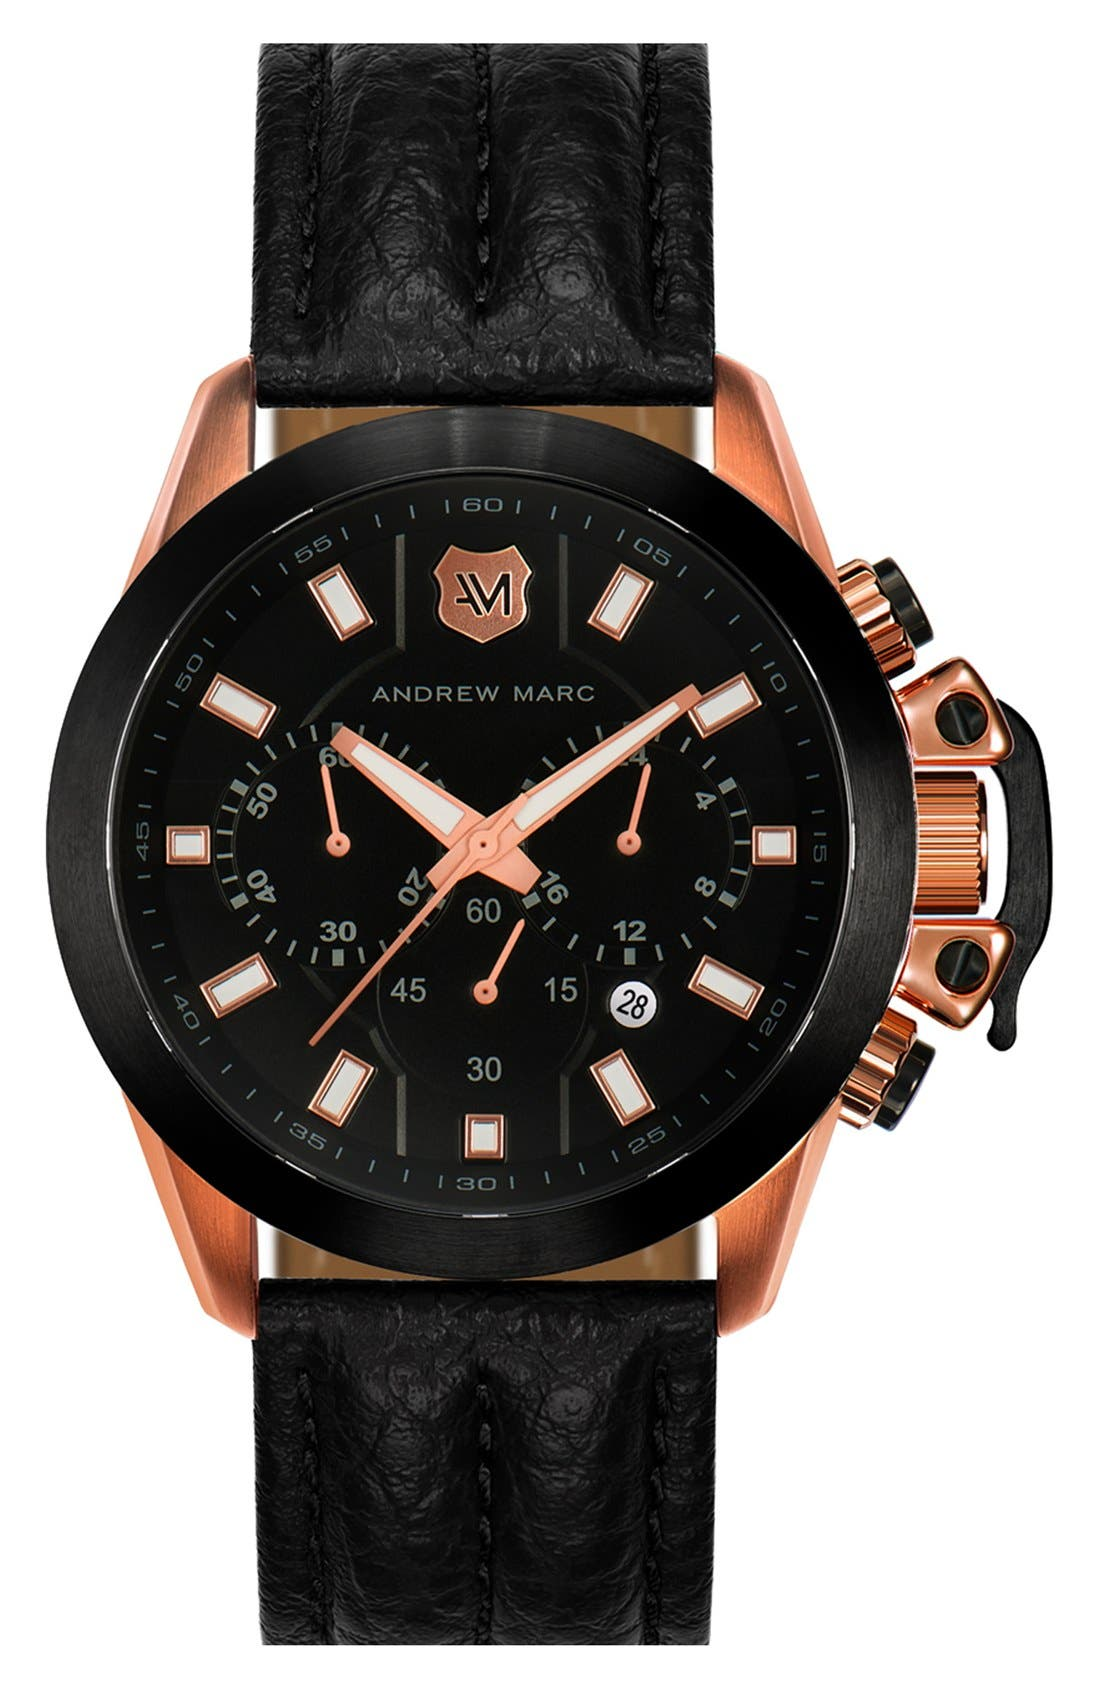 Main Image - Andrew Marc Watches Chronograph Leather Strap Watch, 45mm